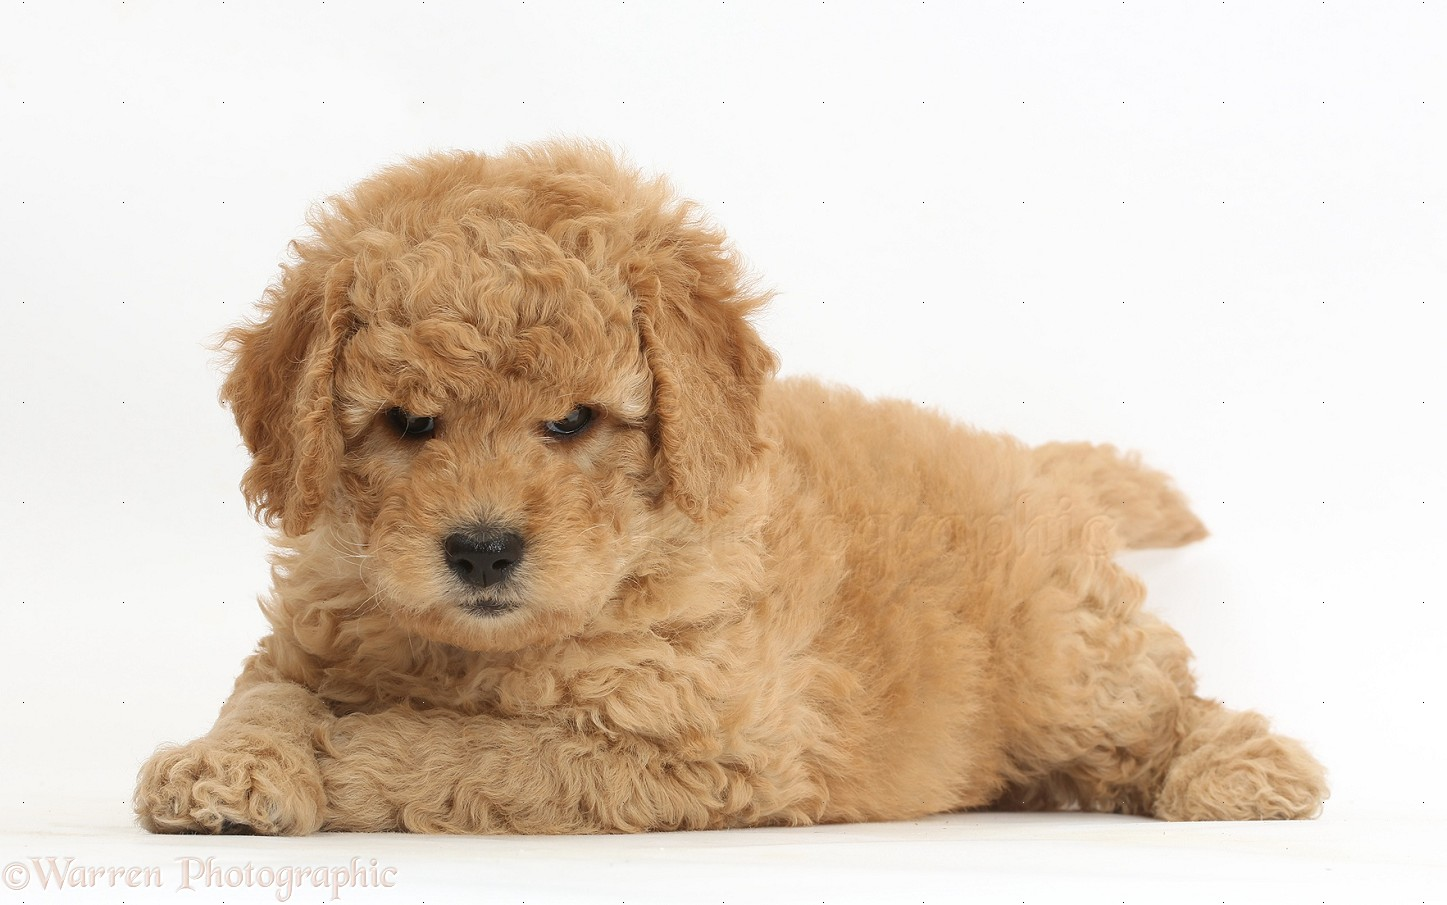 Wp37284 cute f1b goldendoodle puppy